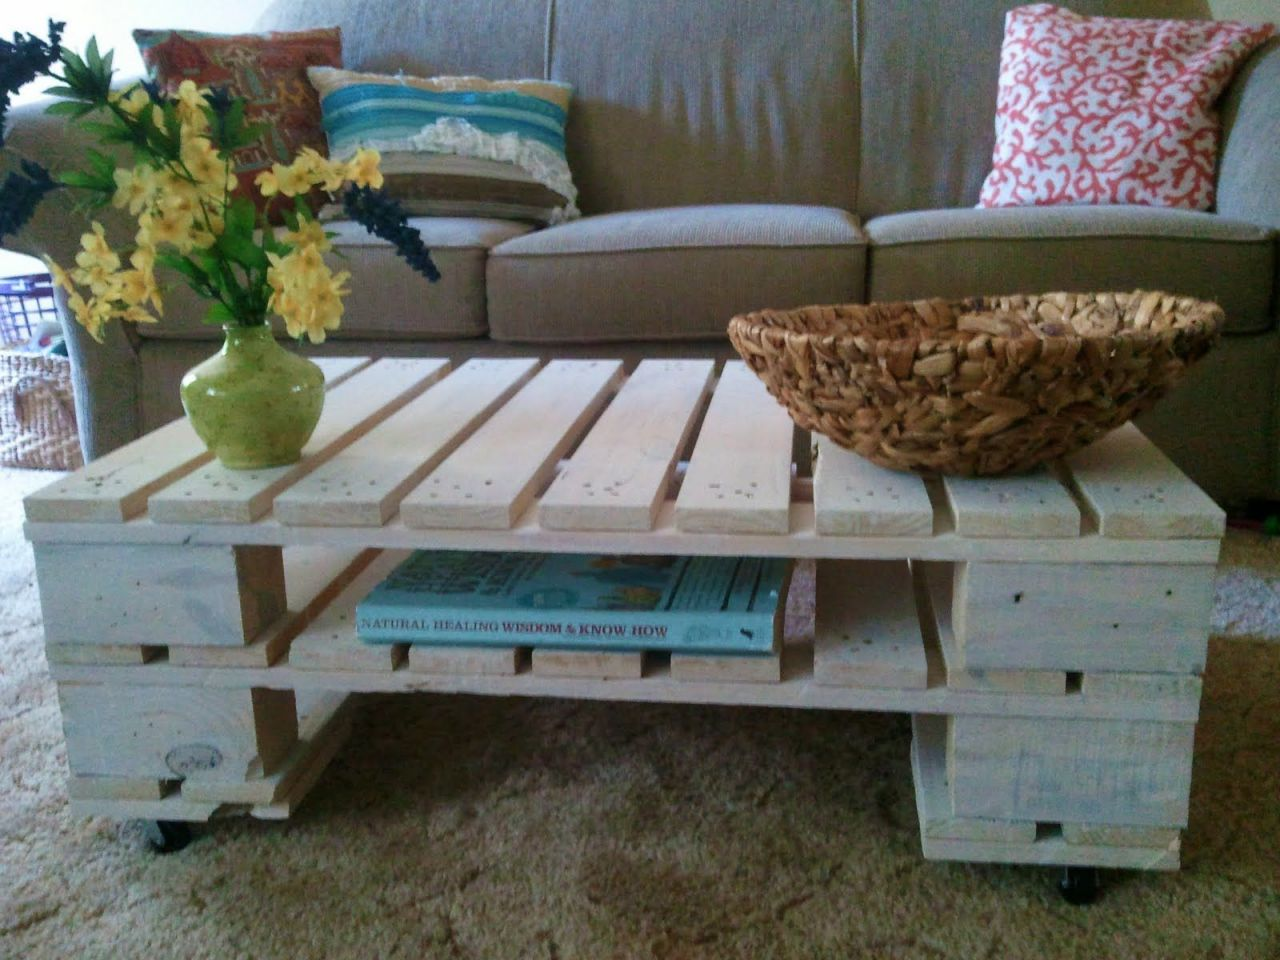 Amazing things to make from wooden pallets